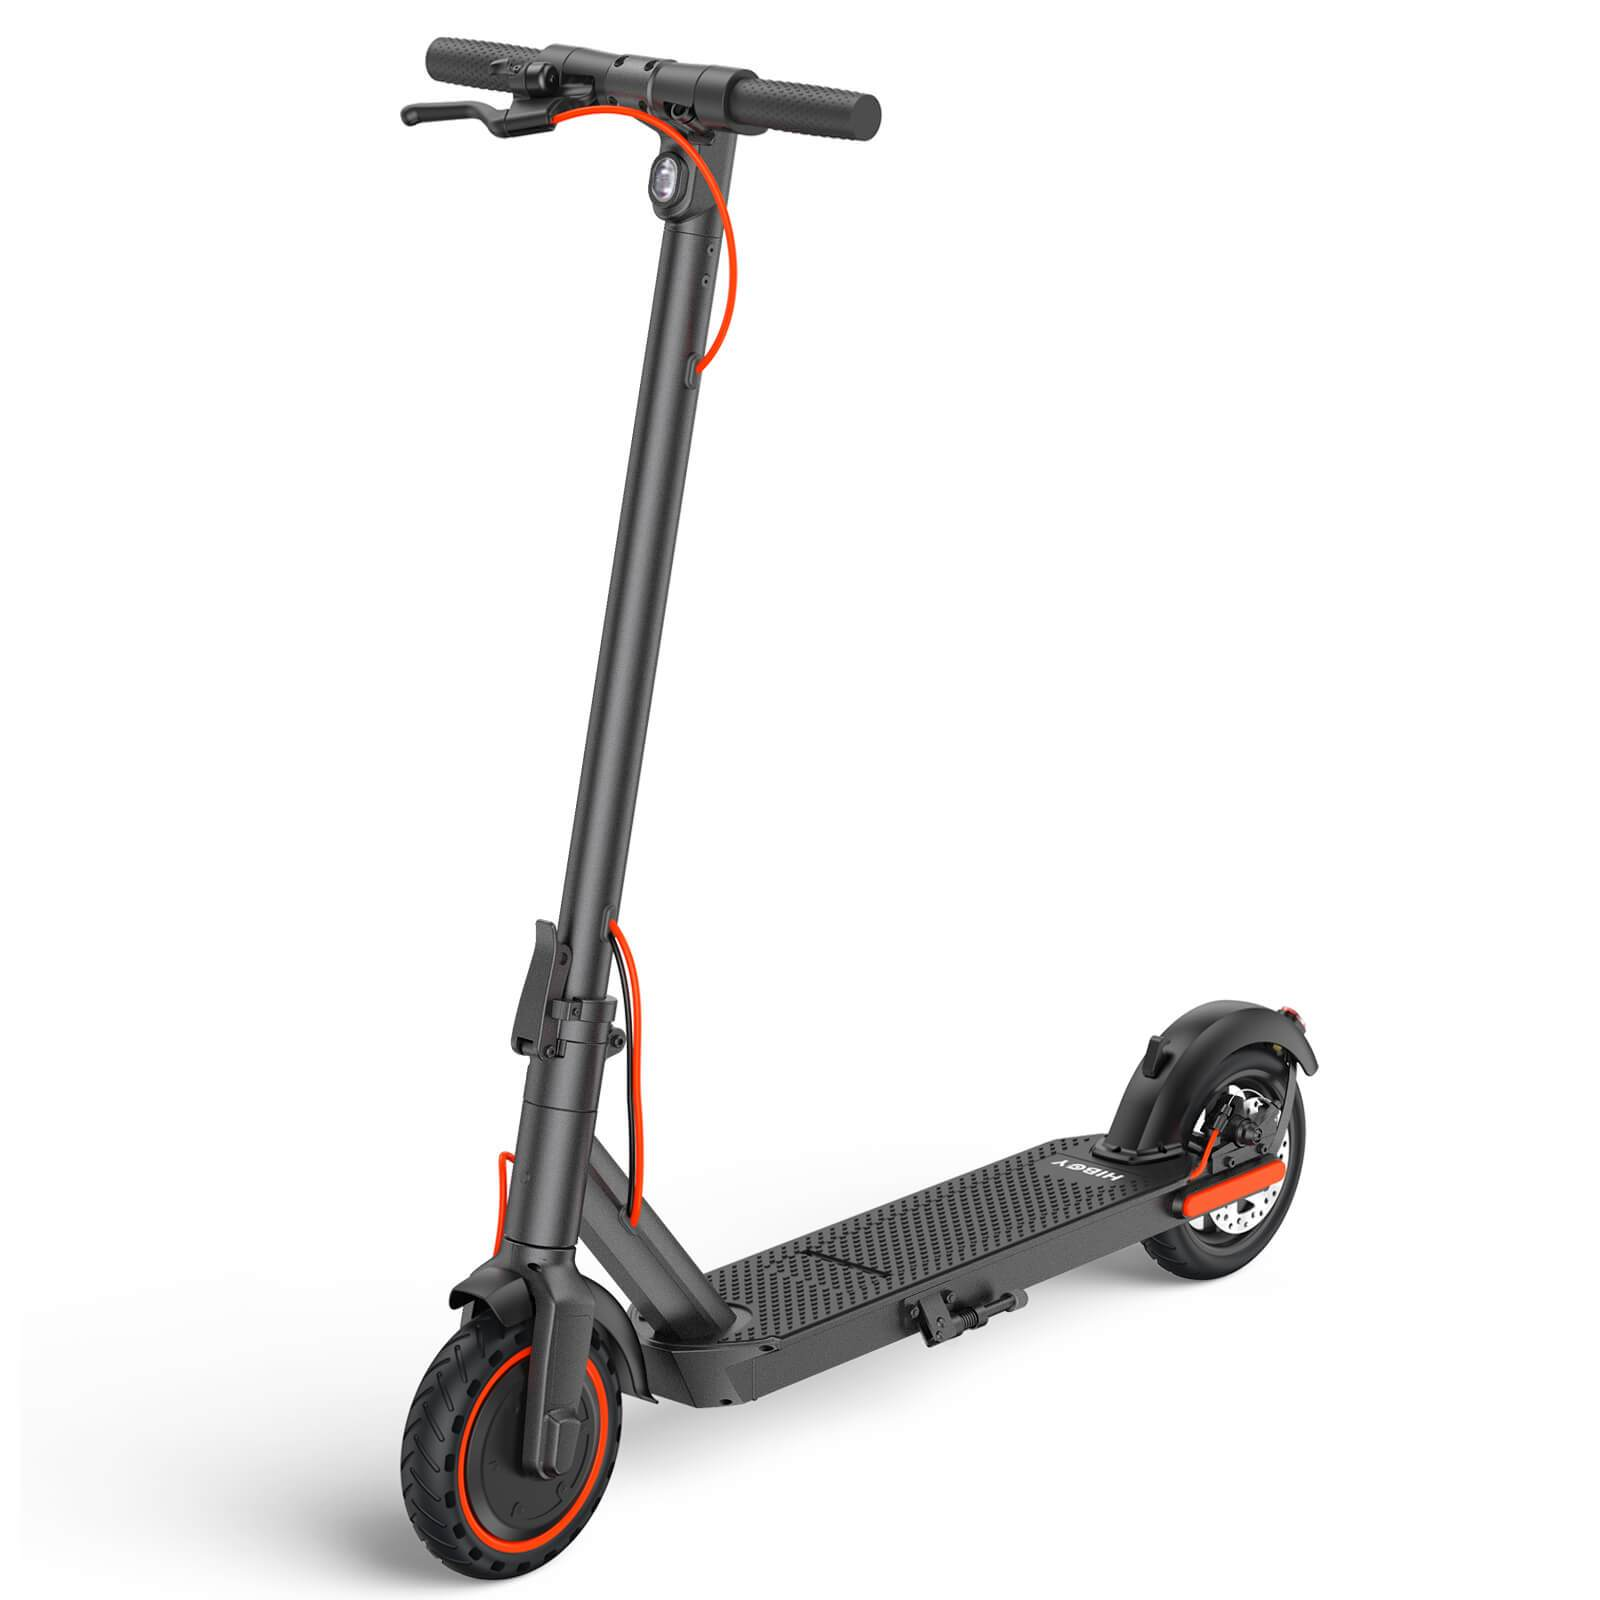 Hiboy S2R Electric Scooter Review